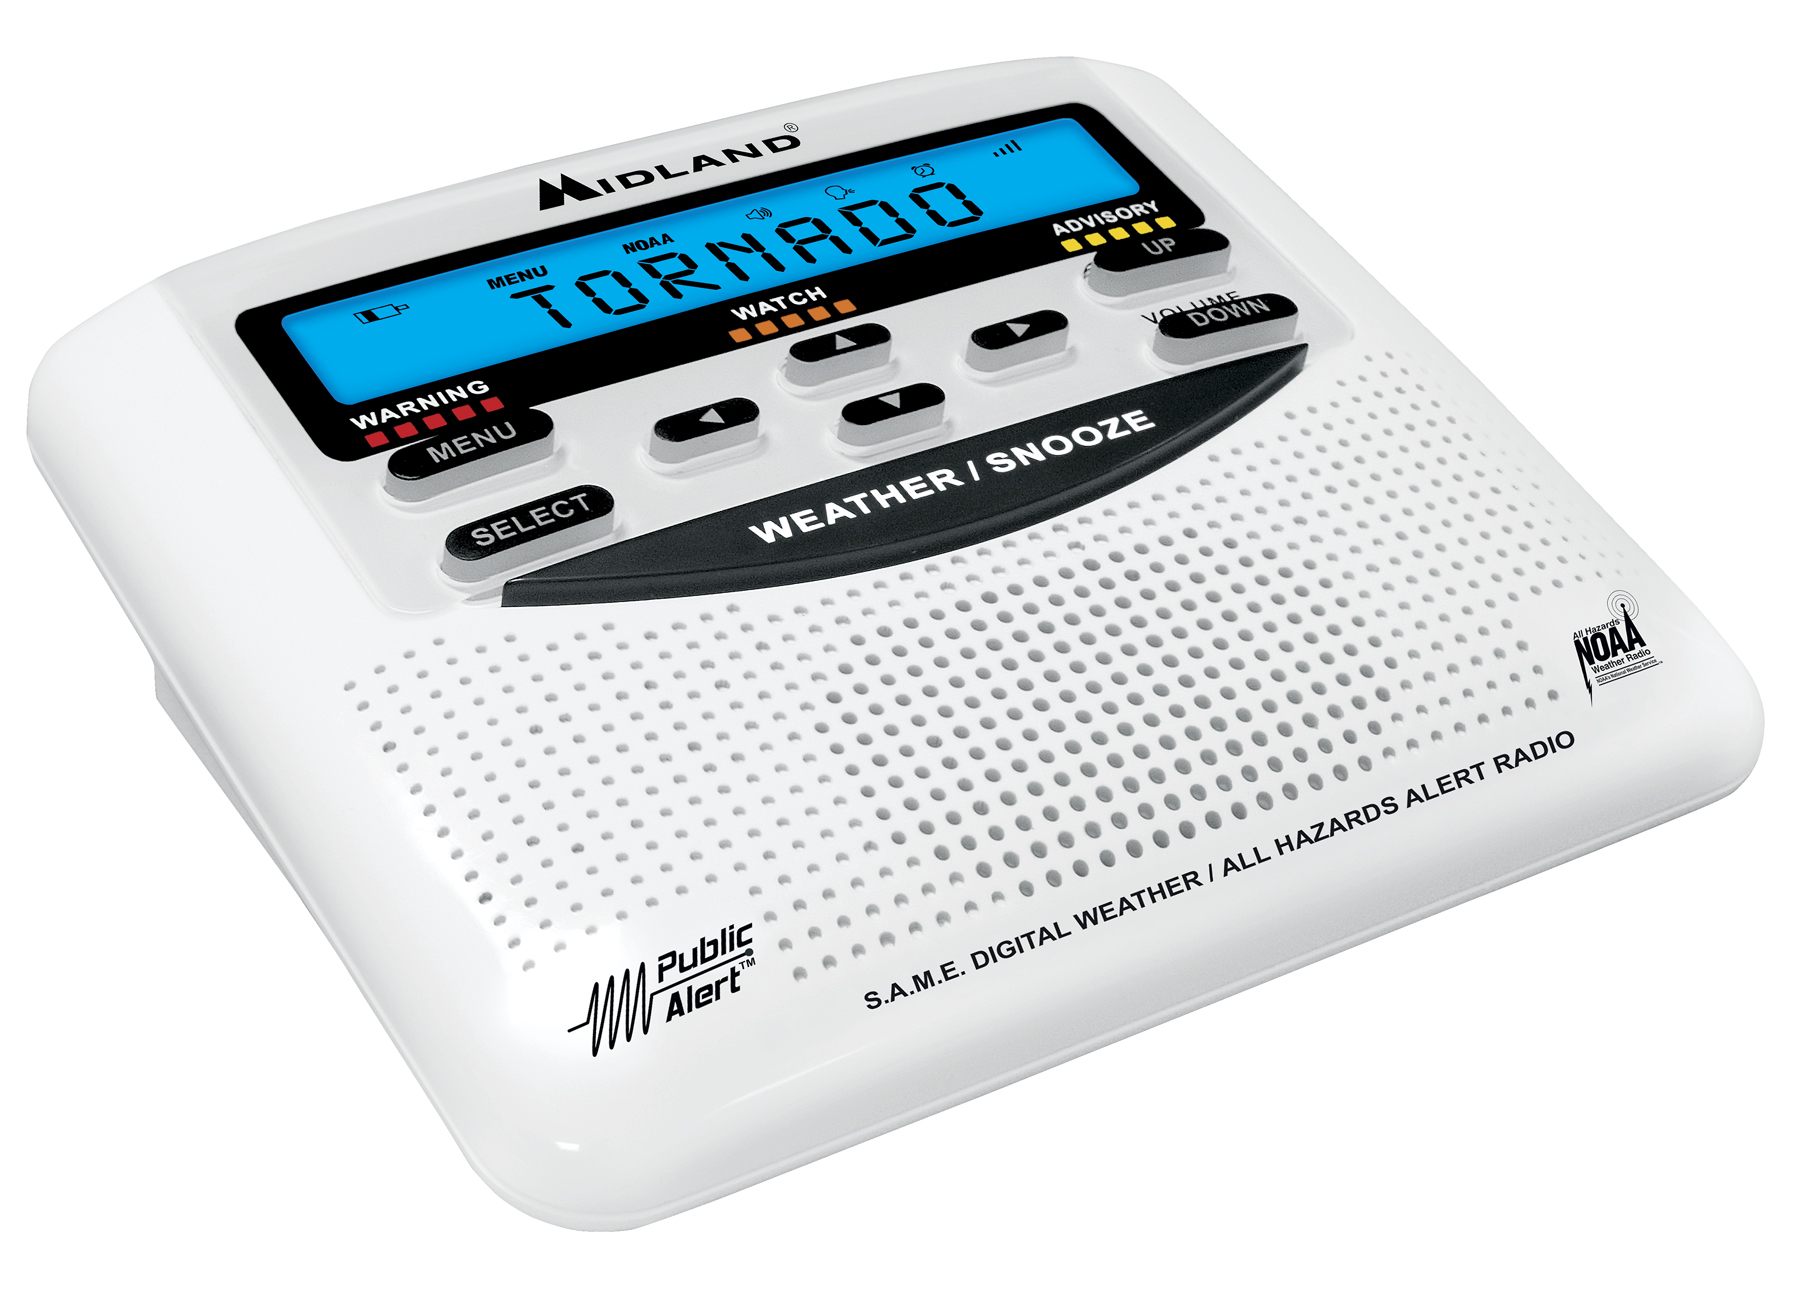 NOAA Weather Radio Day in Millbrook, Thursday, May 17th from 3:00